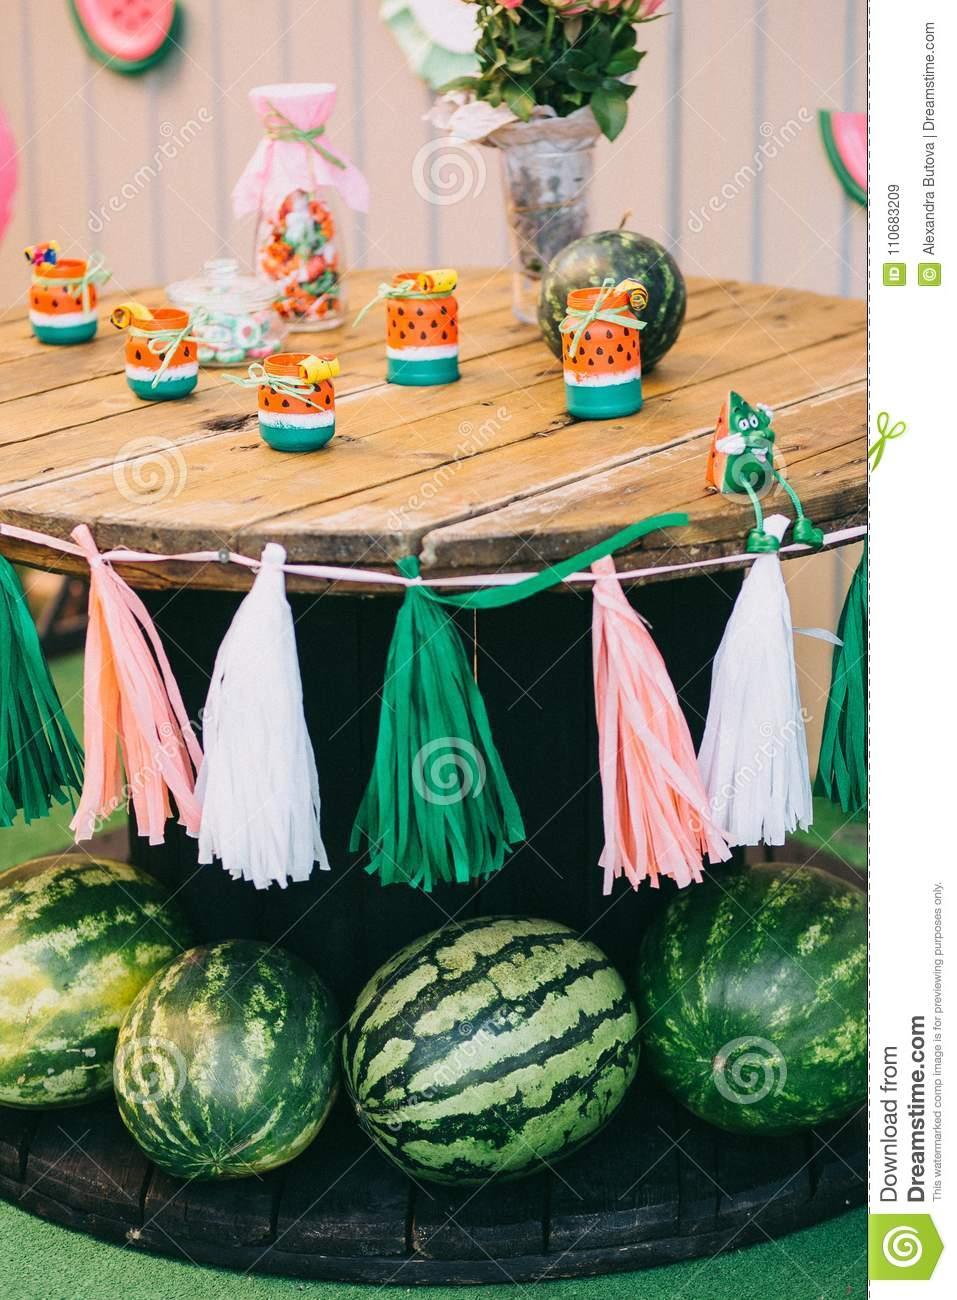 Picnic Decor Wooden Picnic Table Childrens Holiday Birthday With Watermelons